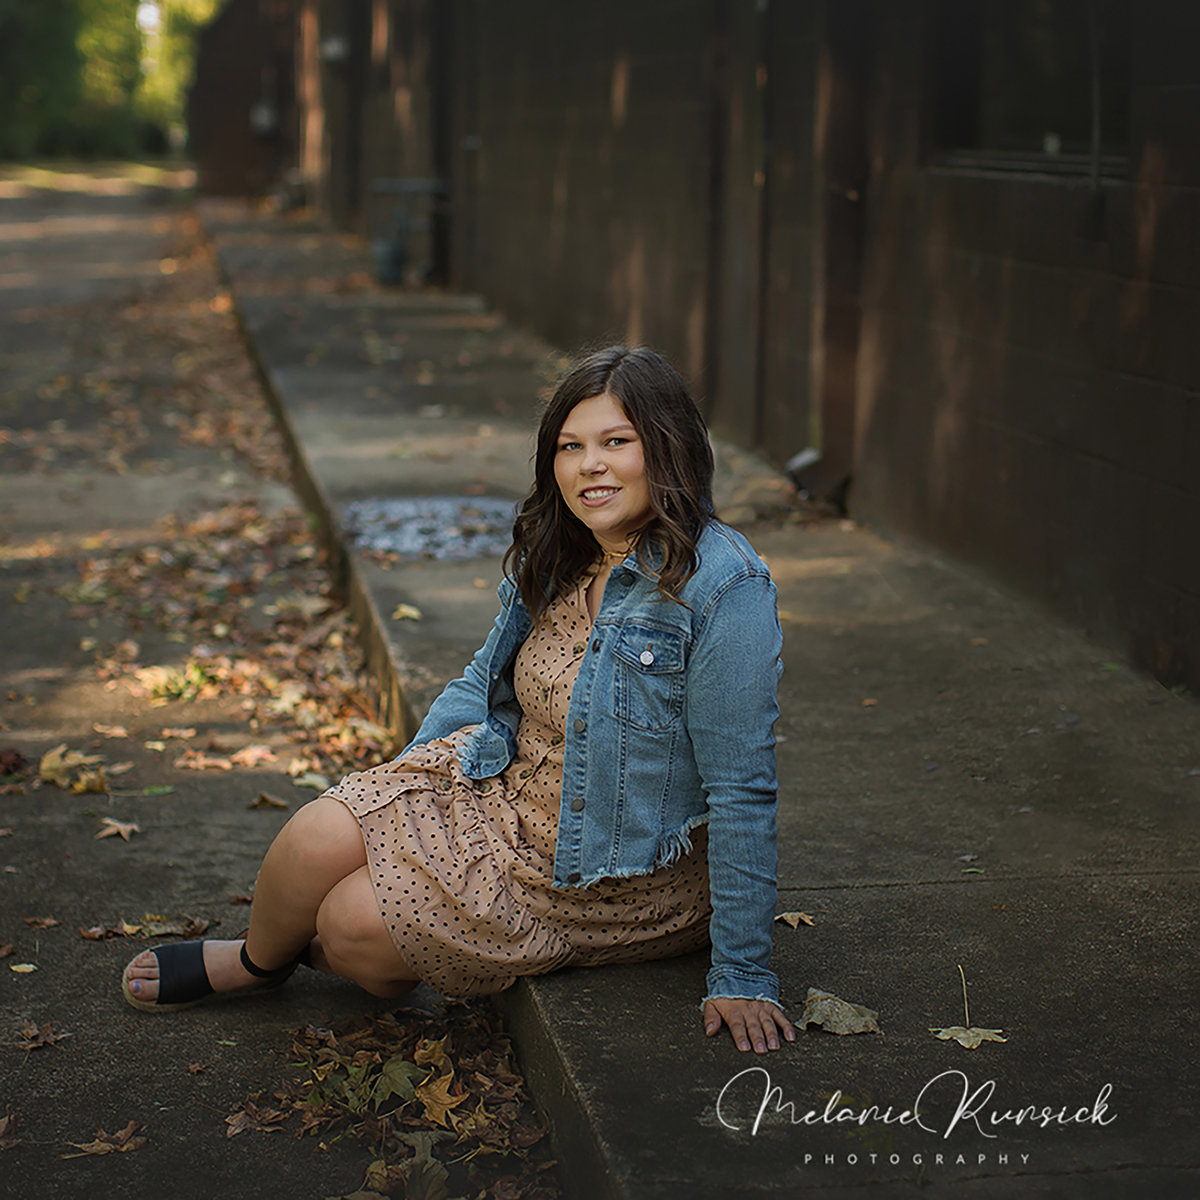 Melanie Runsick Photography Tn Senior Photographer